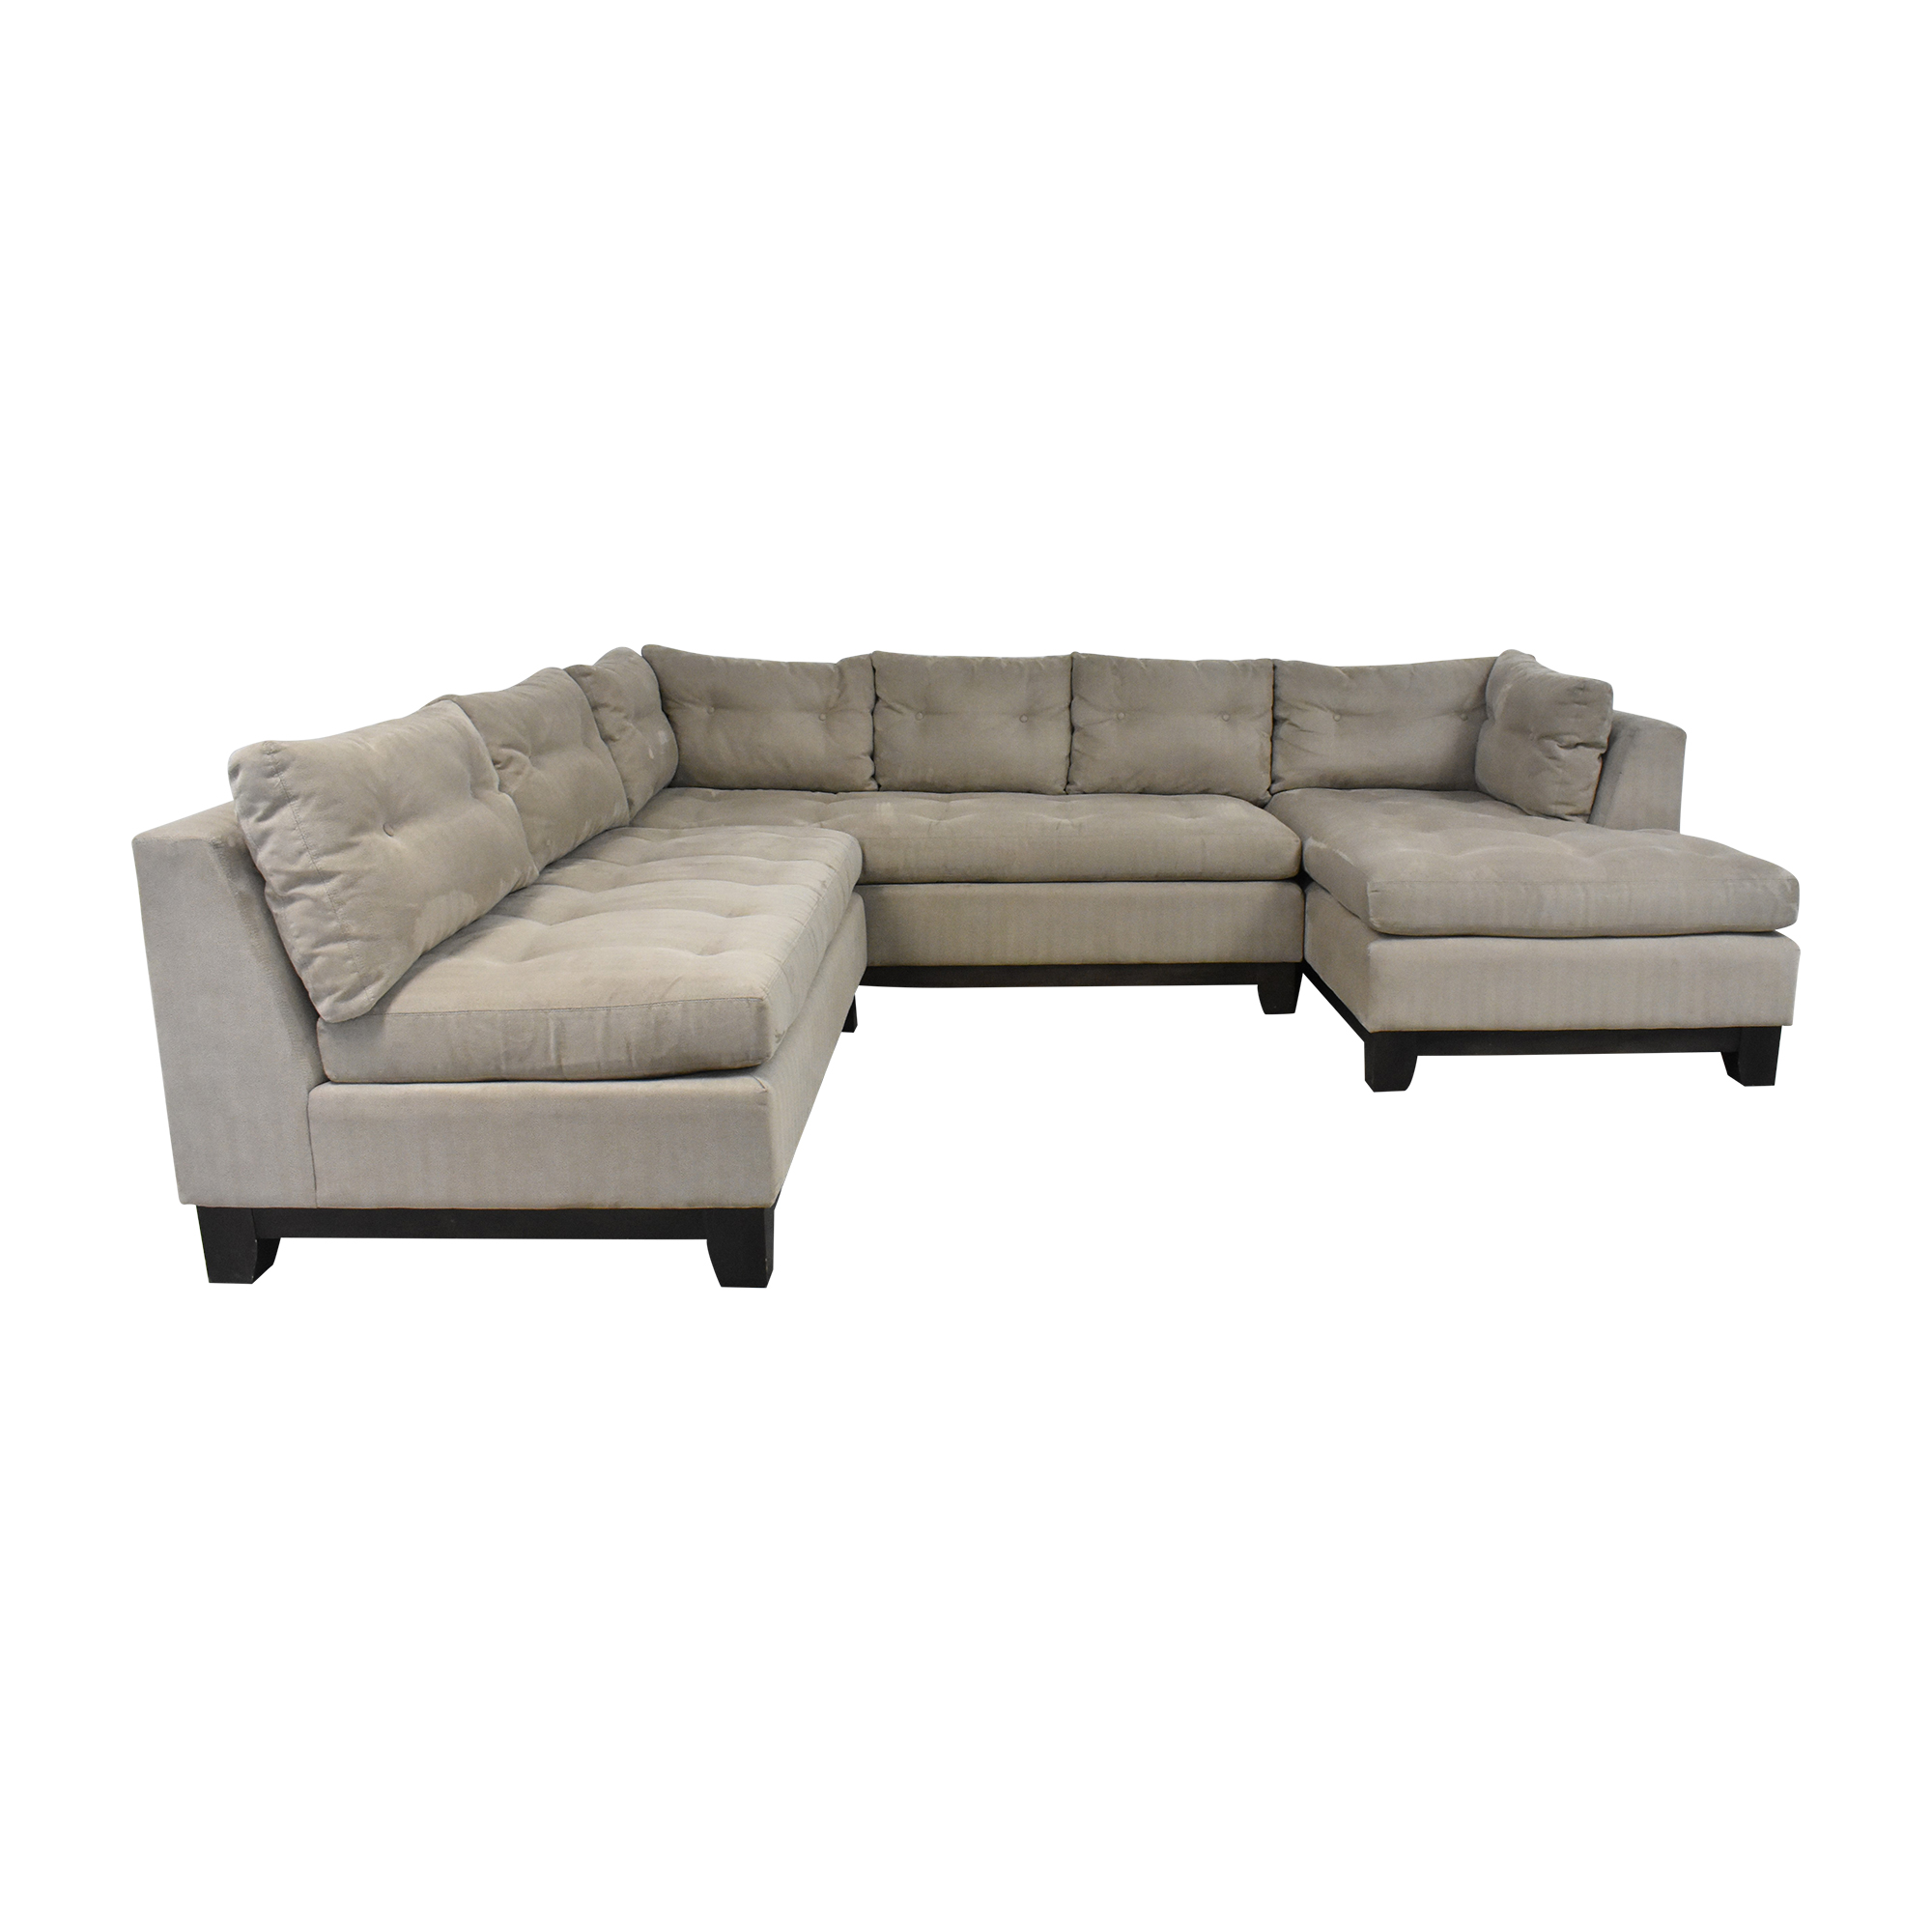 shop Arhaus Camden Collection Chaise Sectional Sofa Arhaus Sofas